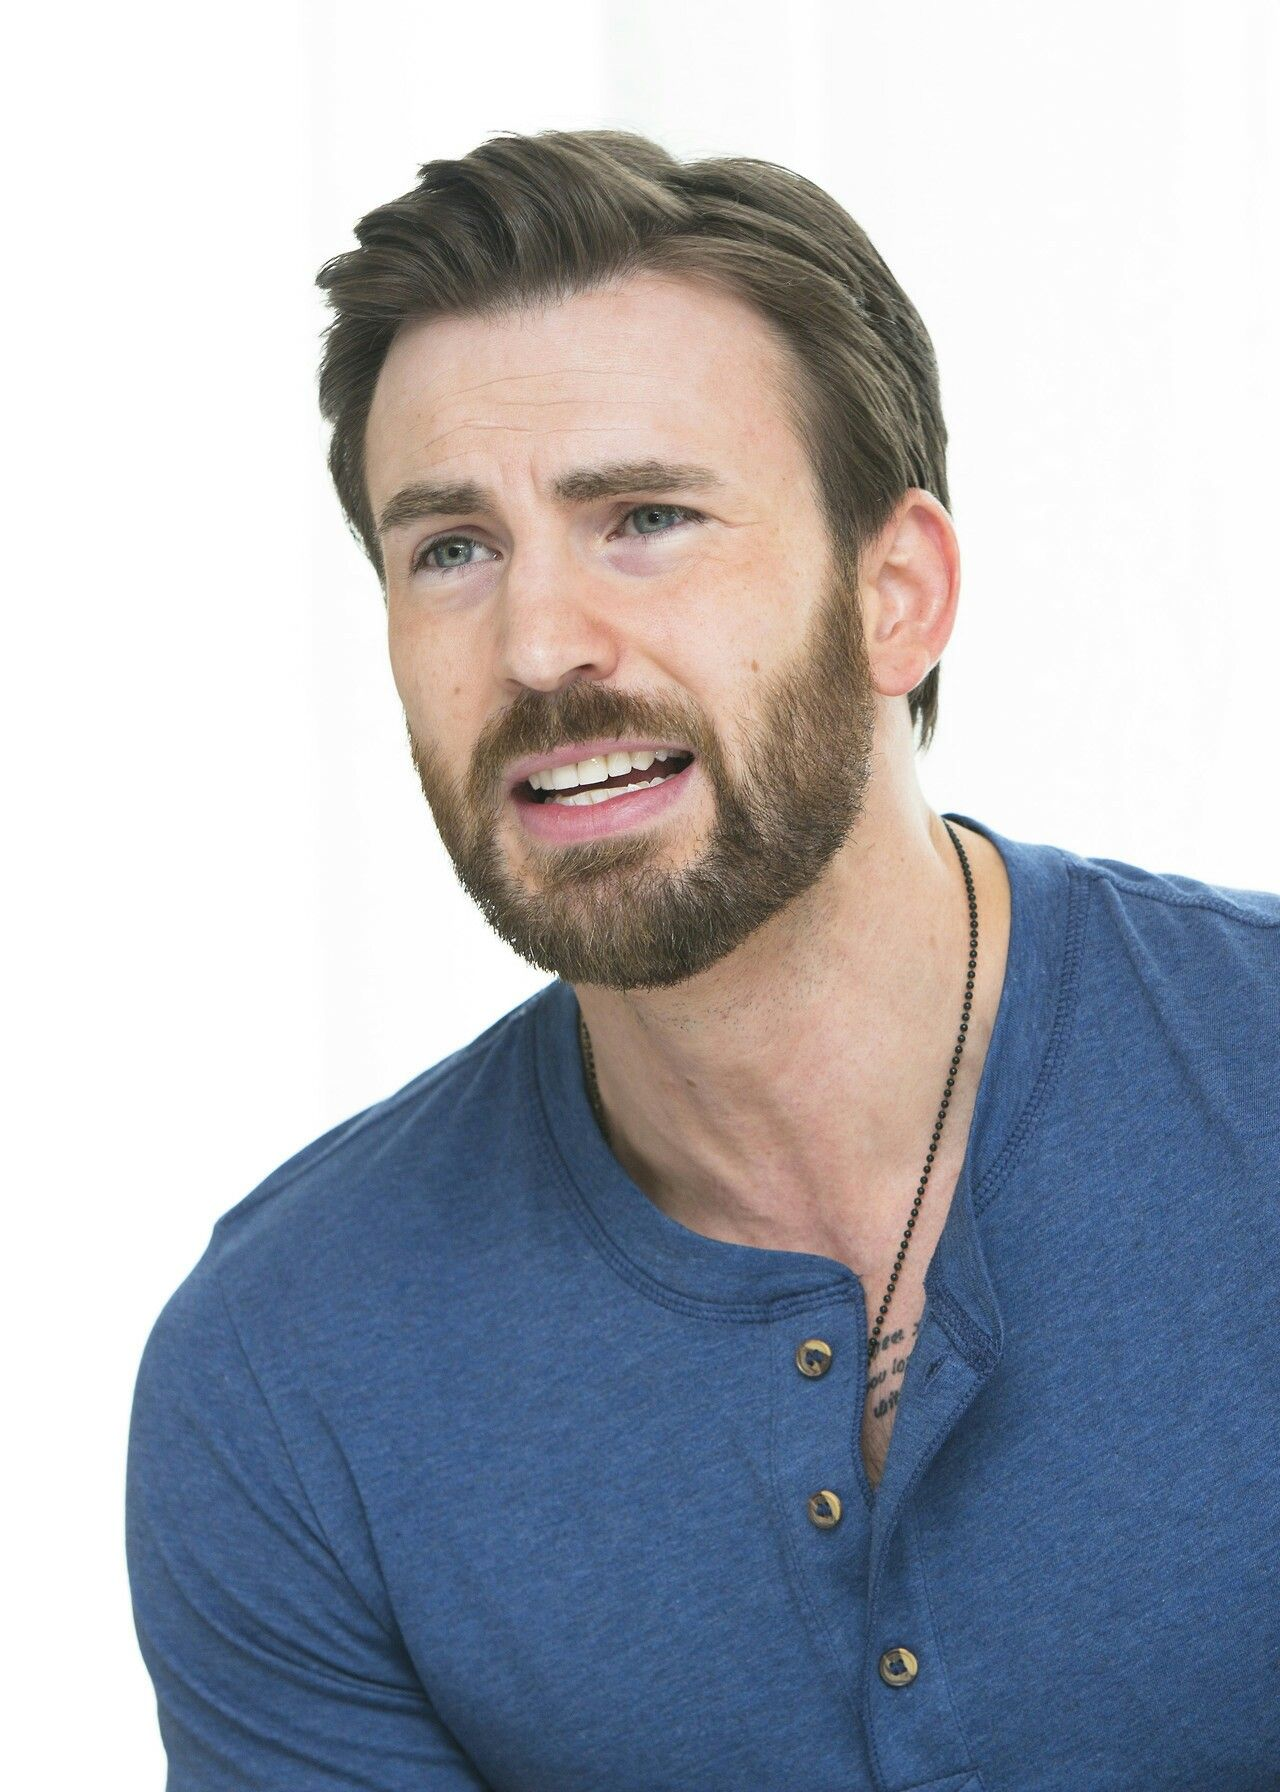 Pin by Hareemchaudhary on Chris evans Chris evans